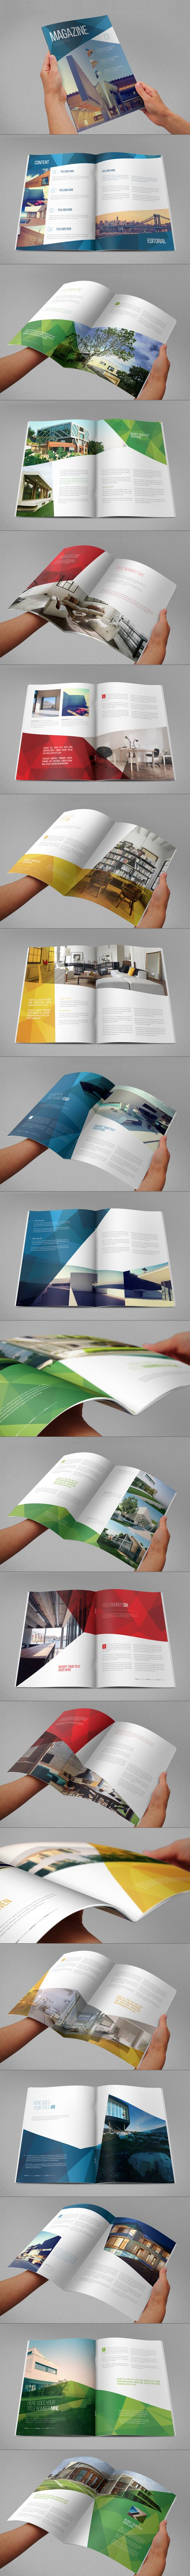 Modern Architecture Magazine by Abra Design, via Behance